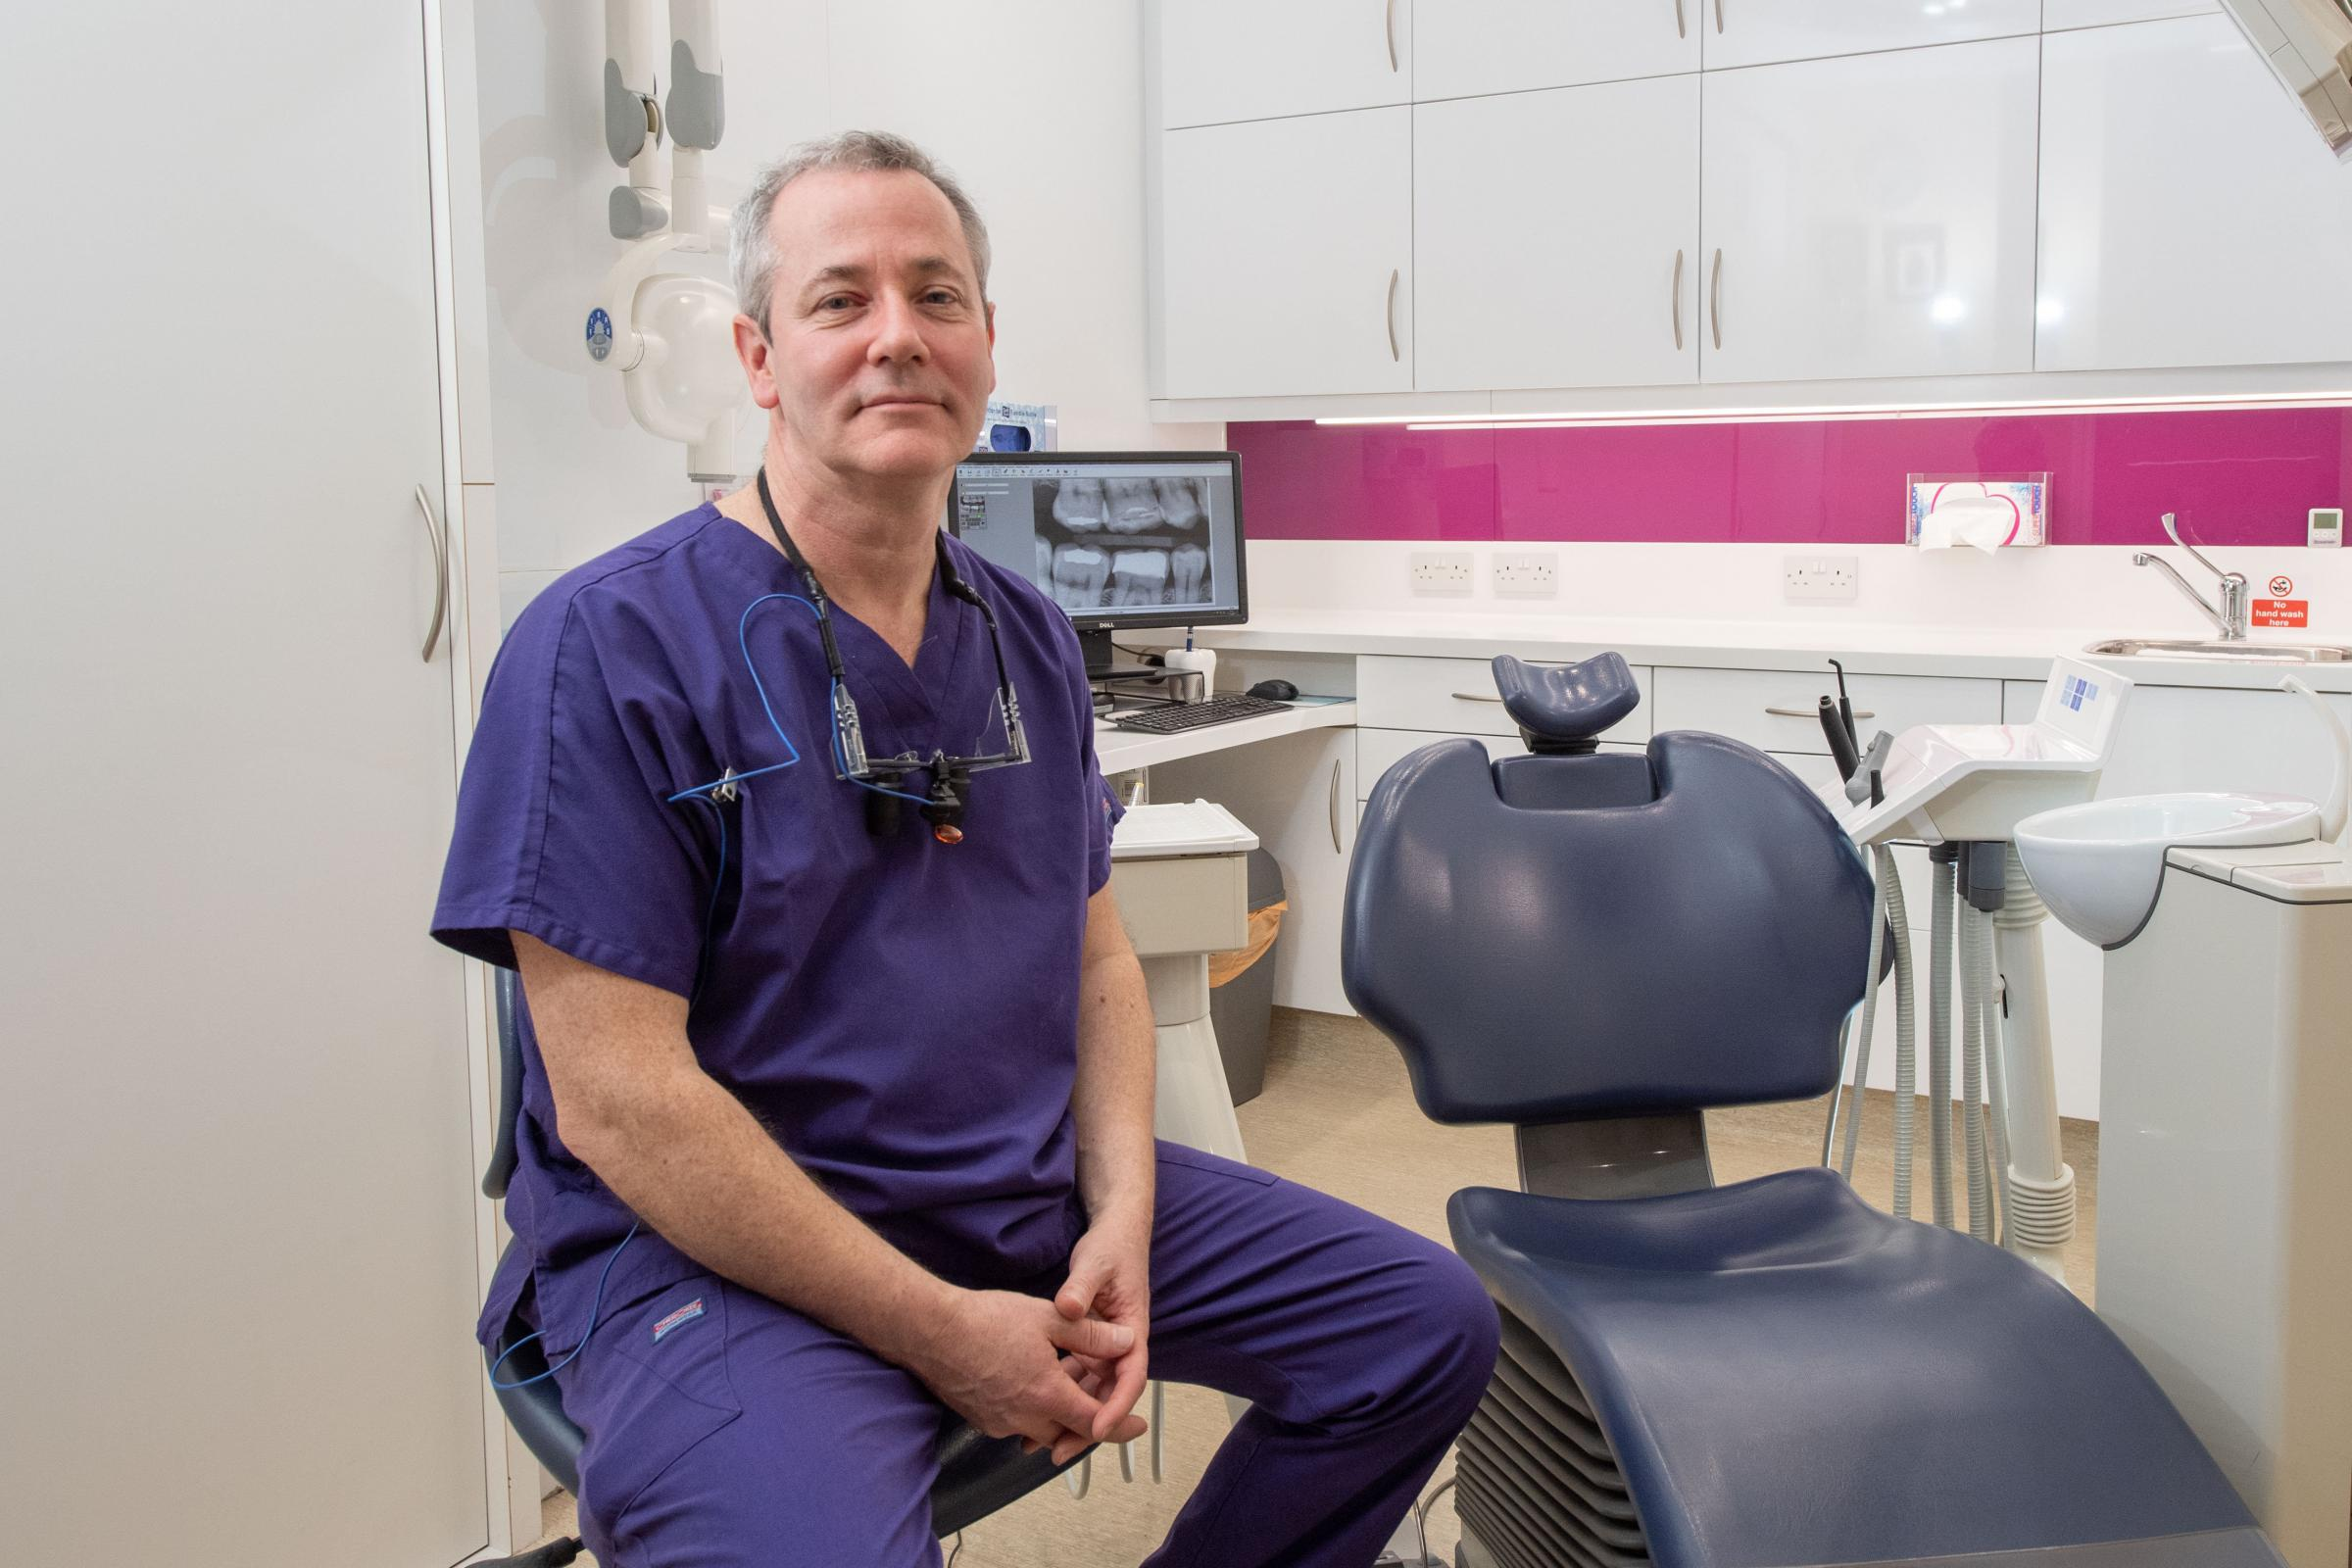 Dentist Ross McLelland said Scotland's new inspections regime has created a double standard between how private and NHS practices are scrutinised Picture by Abermedia / Michal Wachucik